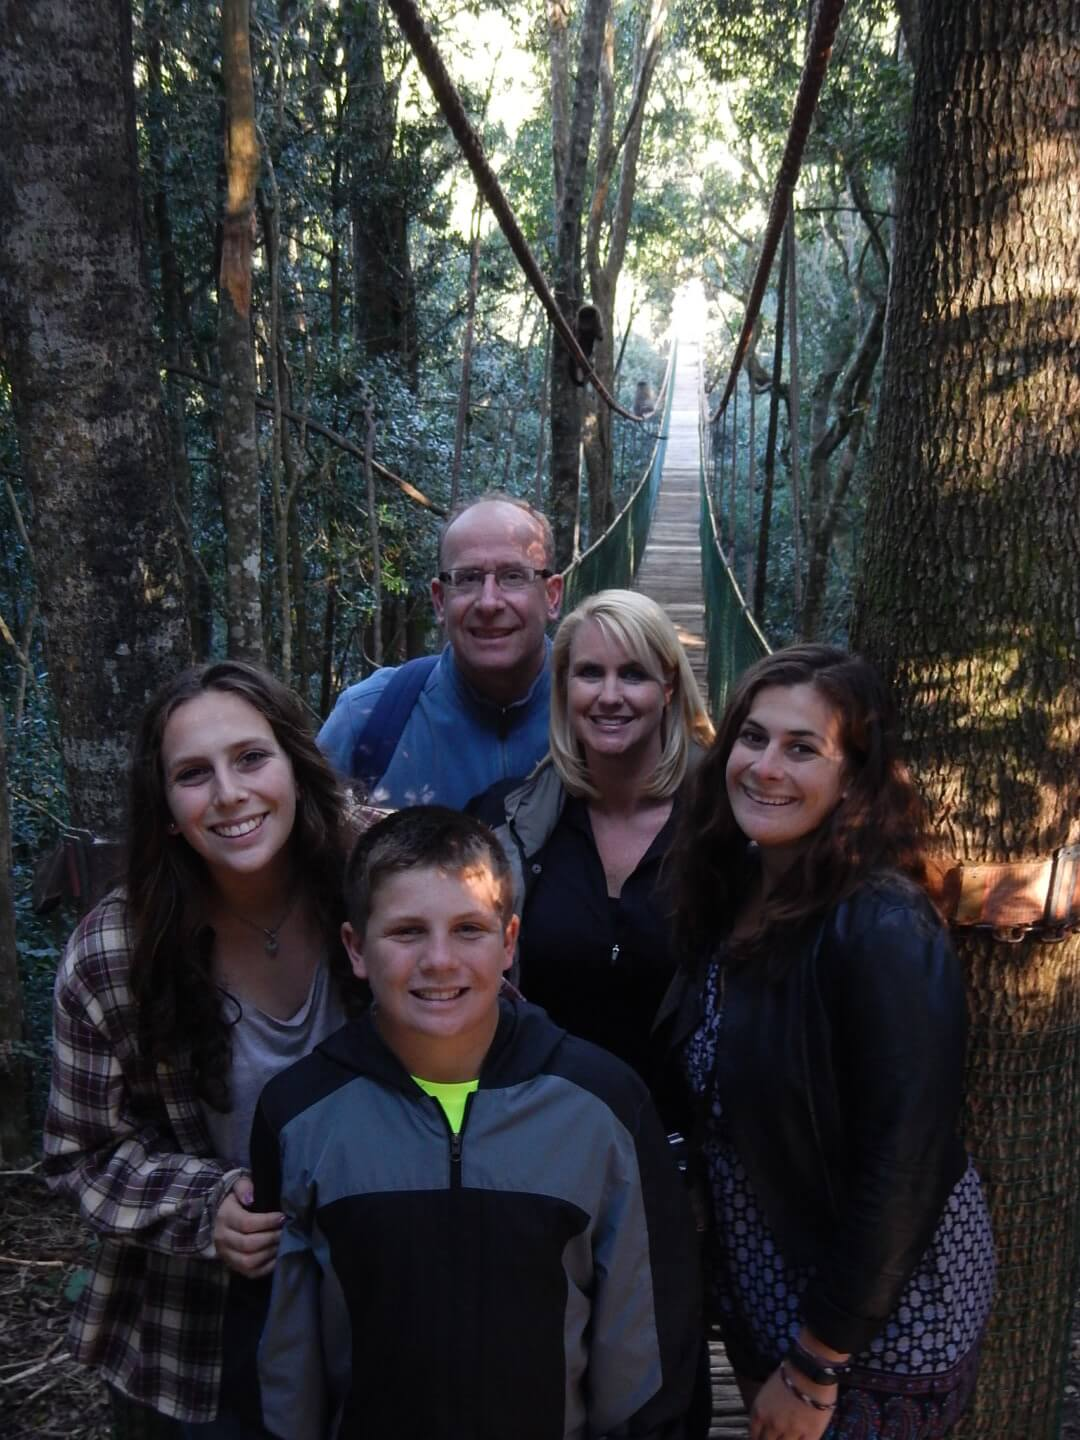 Andy Berry and family posing for a picture on a rope bridge in a forest.